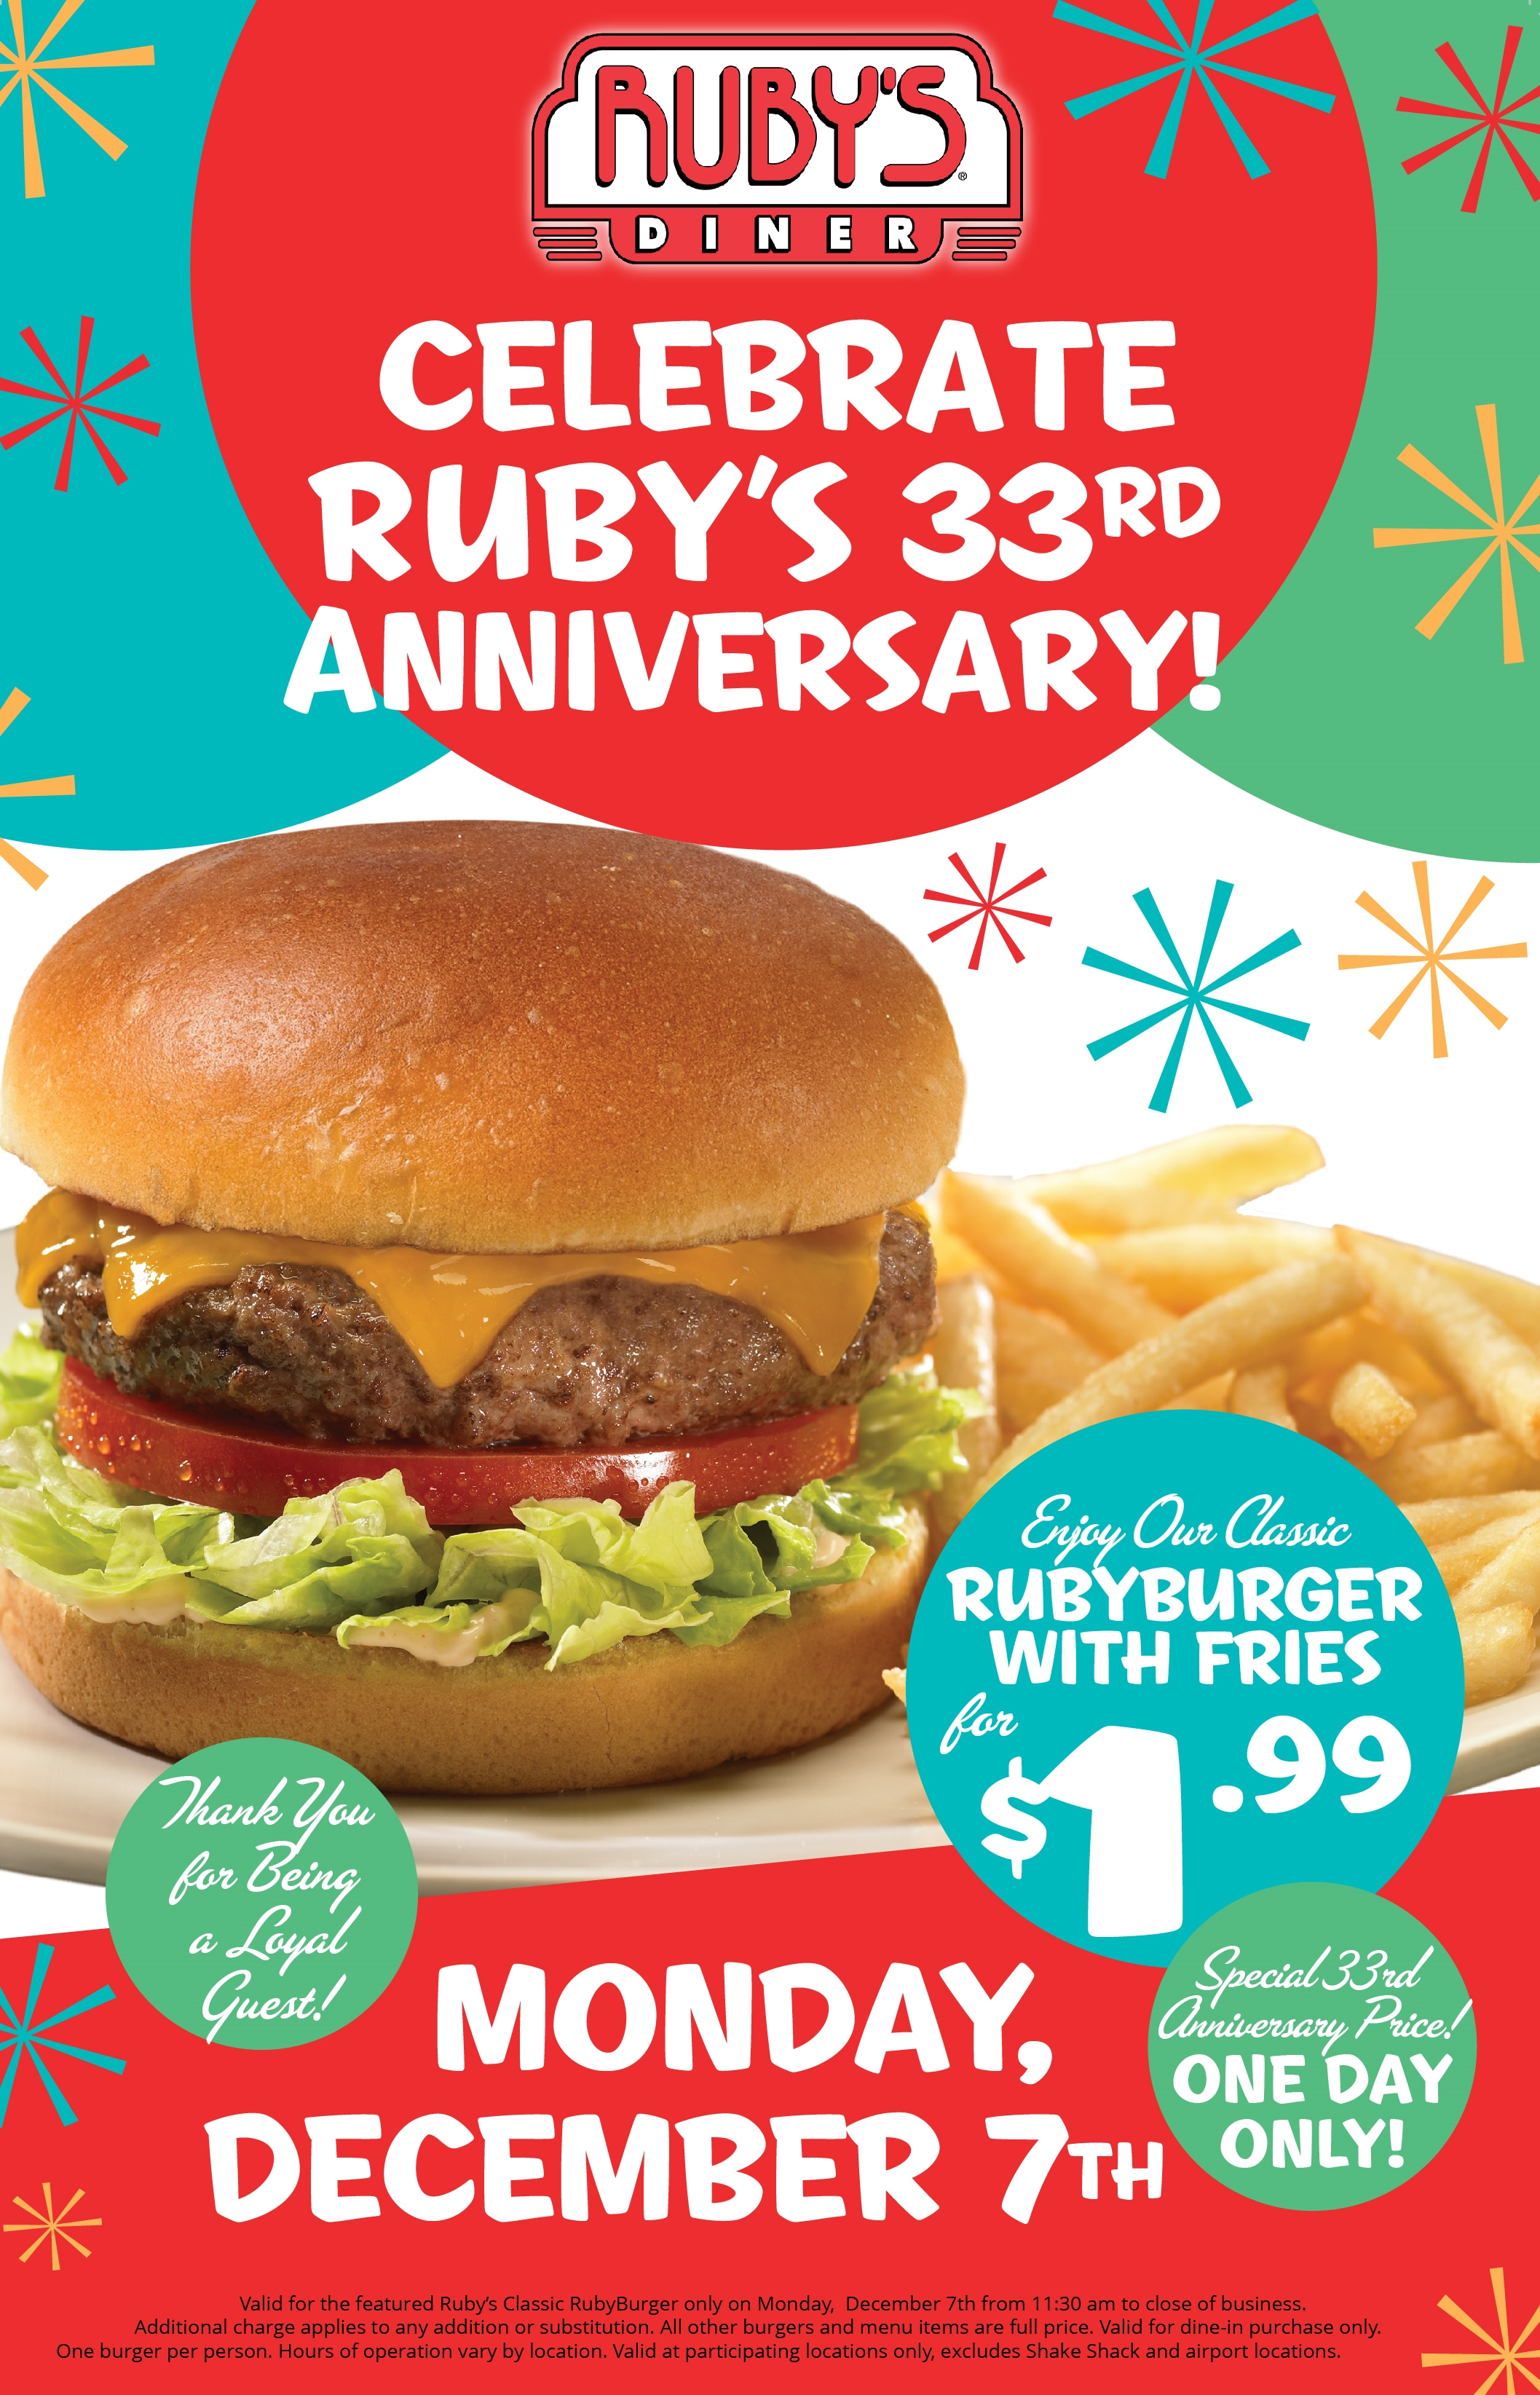 12.07.15 SD_33rd Anniversary Burger Day_T-Stand_Final